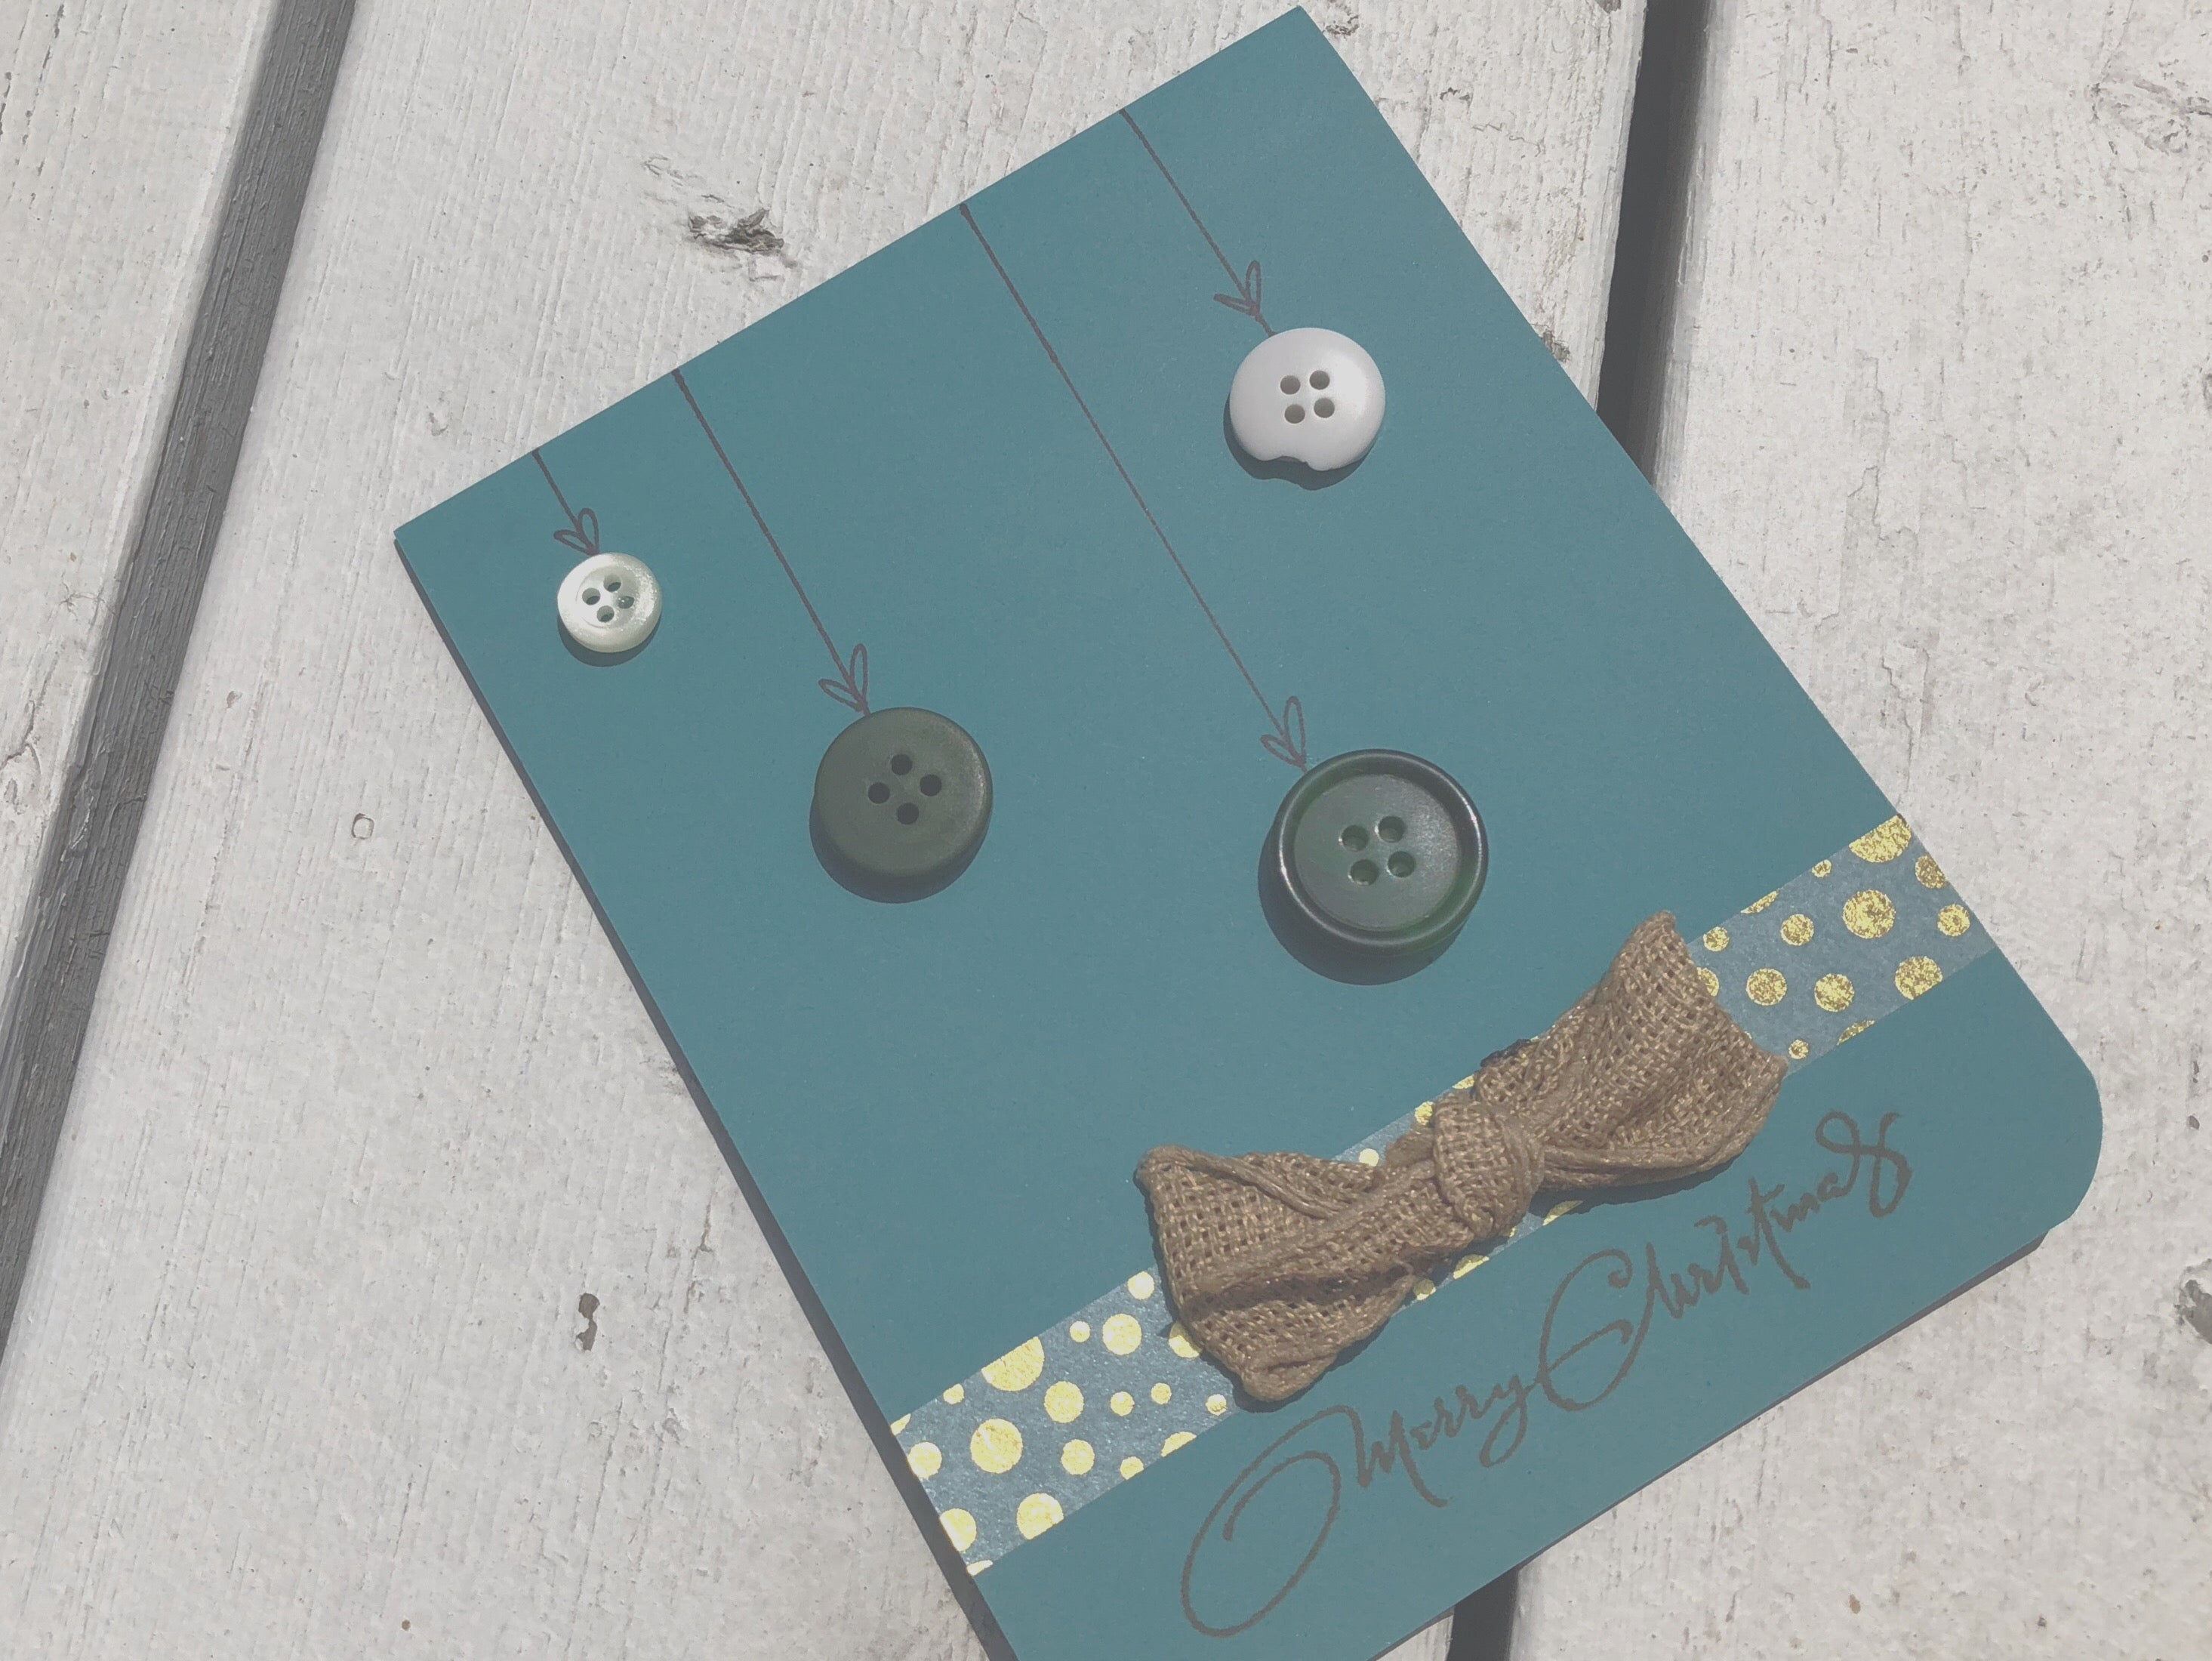 Buttons n' Baubles | handmade Christmas card | turquoise variant | 3 button ornaments hanging from top, washi tape stripe at bottom with burlap bow | merry christmas sentiment at bottom | Thoughtfully Handmade